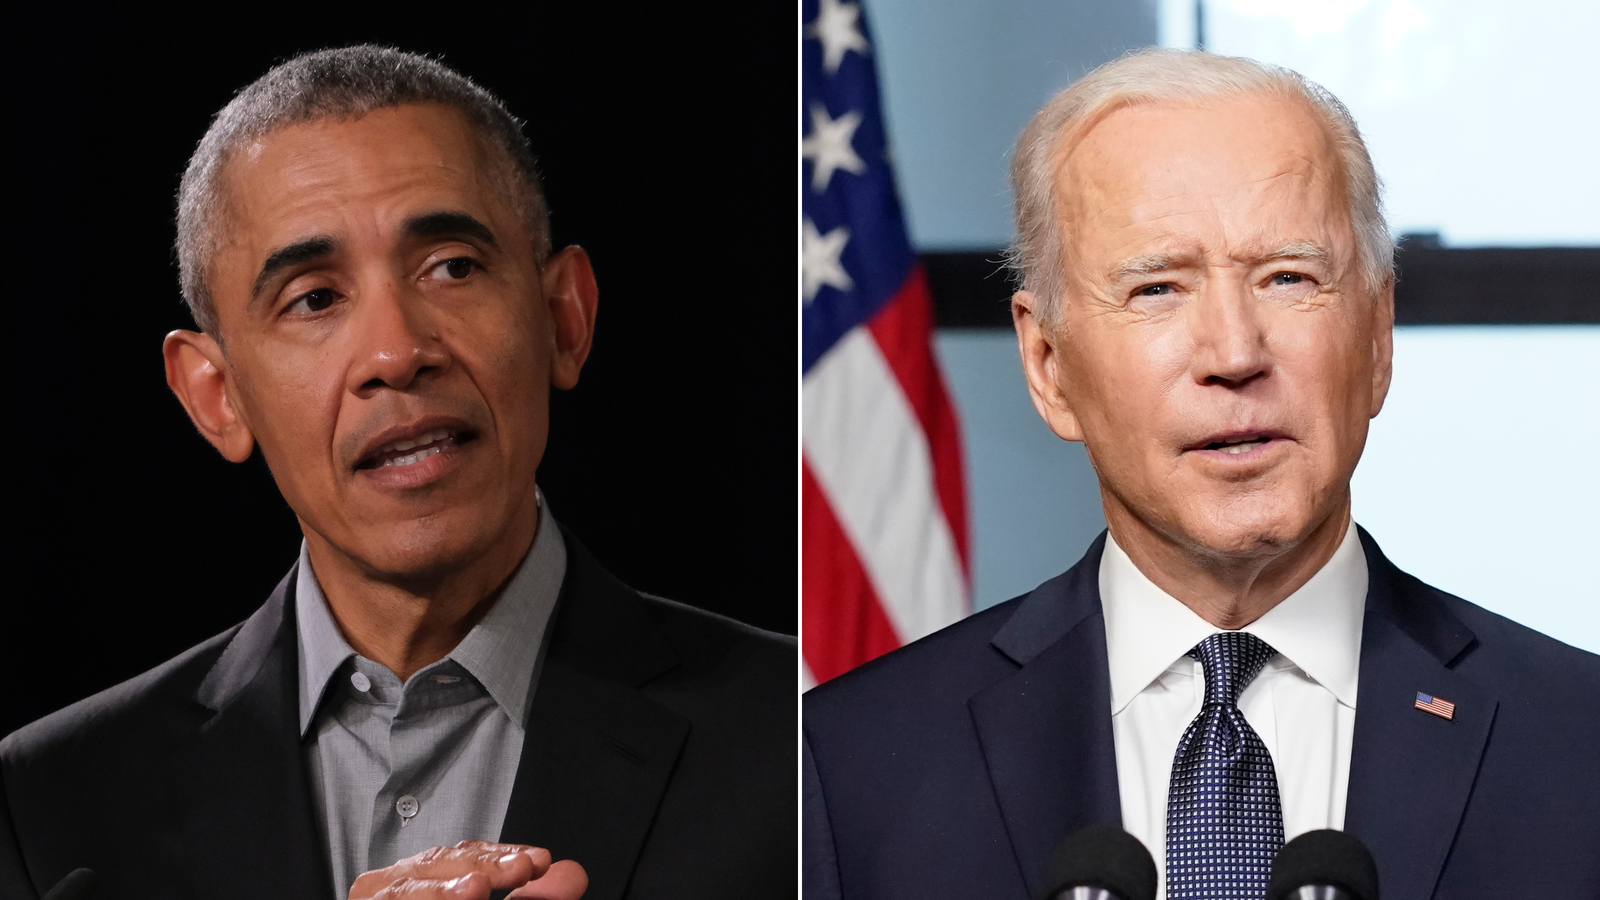 Biden and Obama urge Americans to get vaccinated in star-studded television special